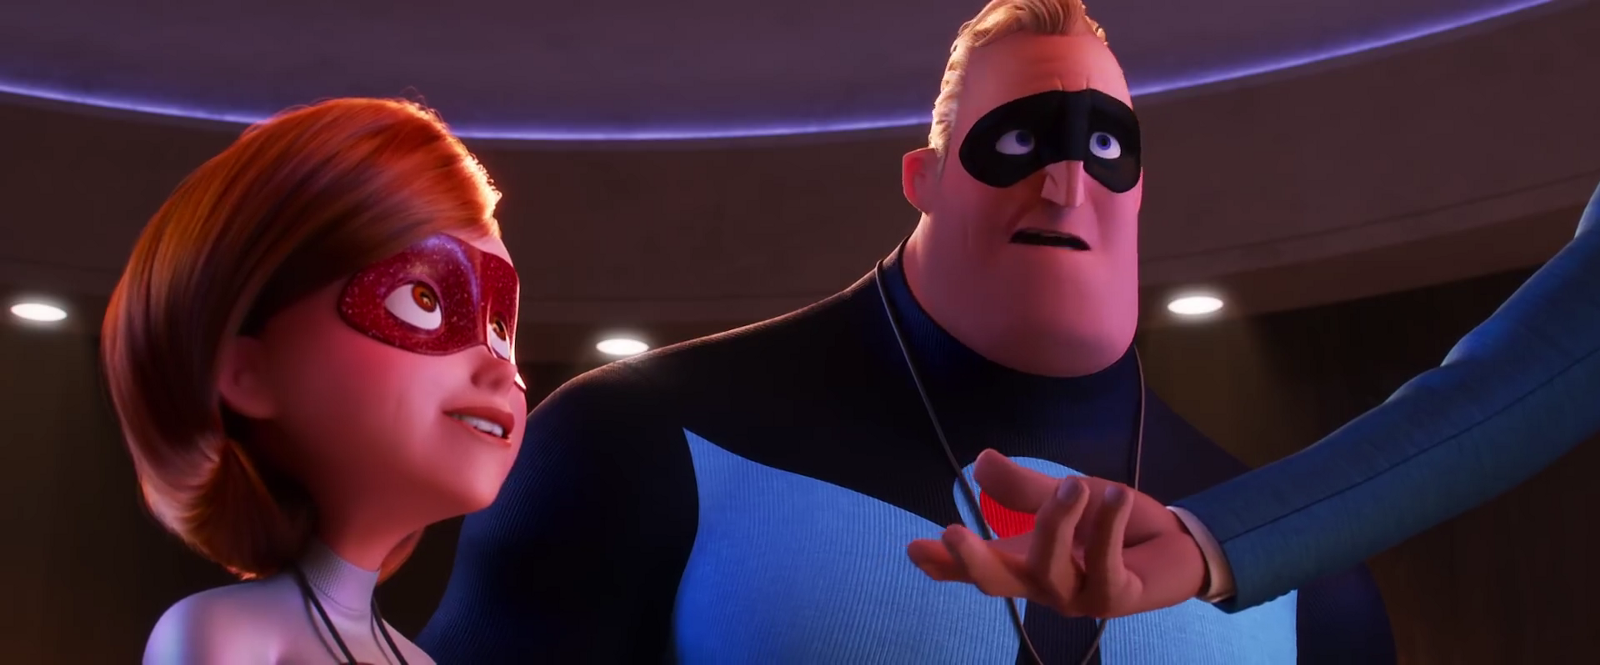 Take the Cannoli: The Incredibles might be the best superhero movie out there